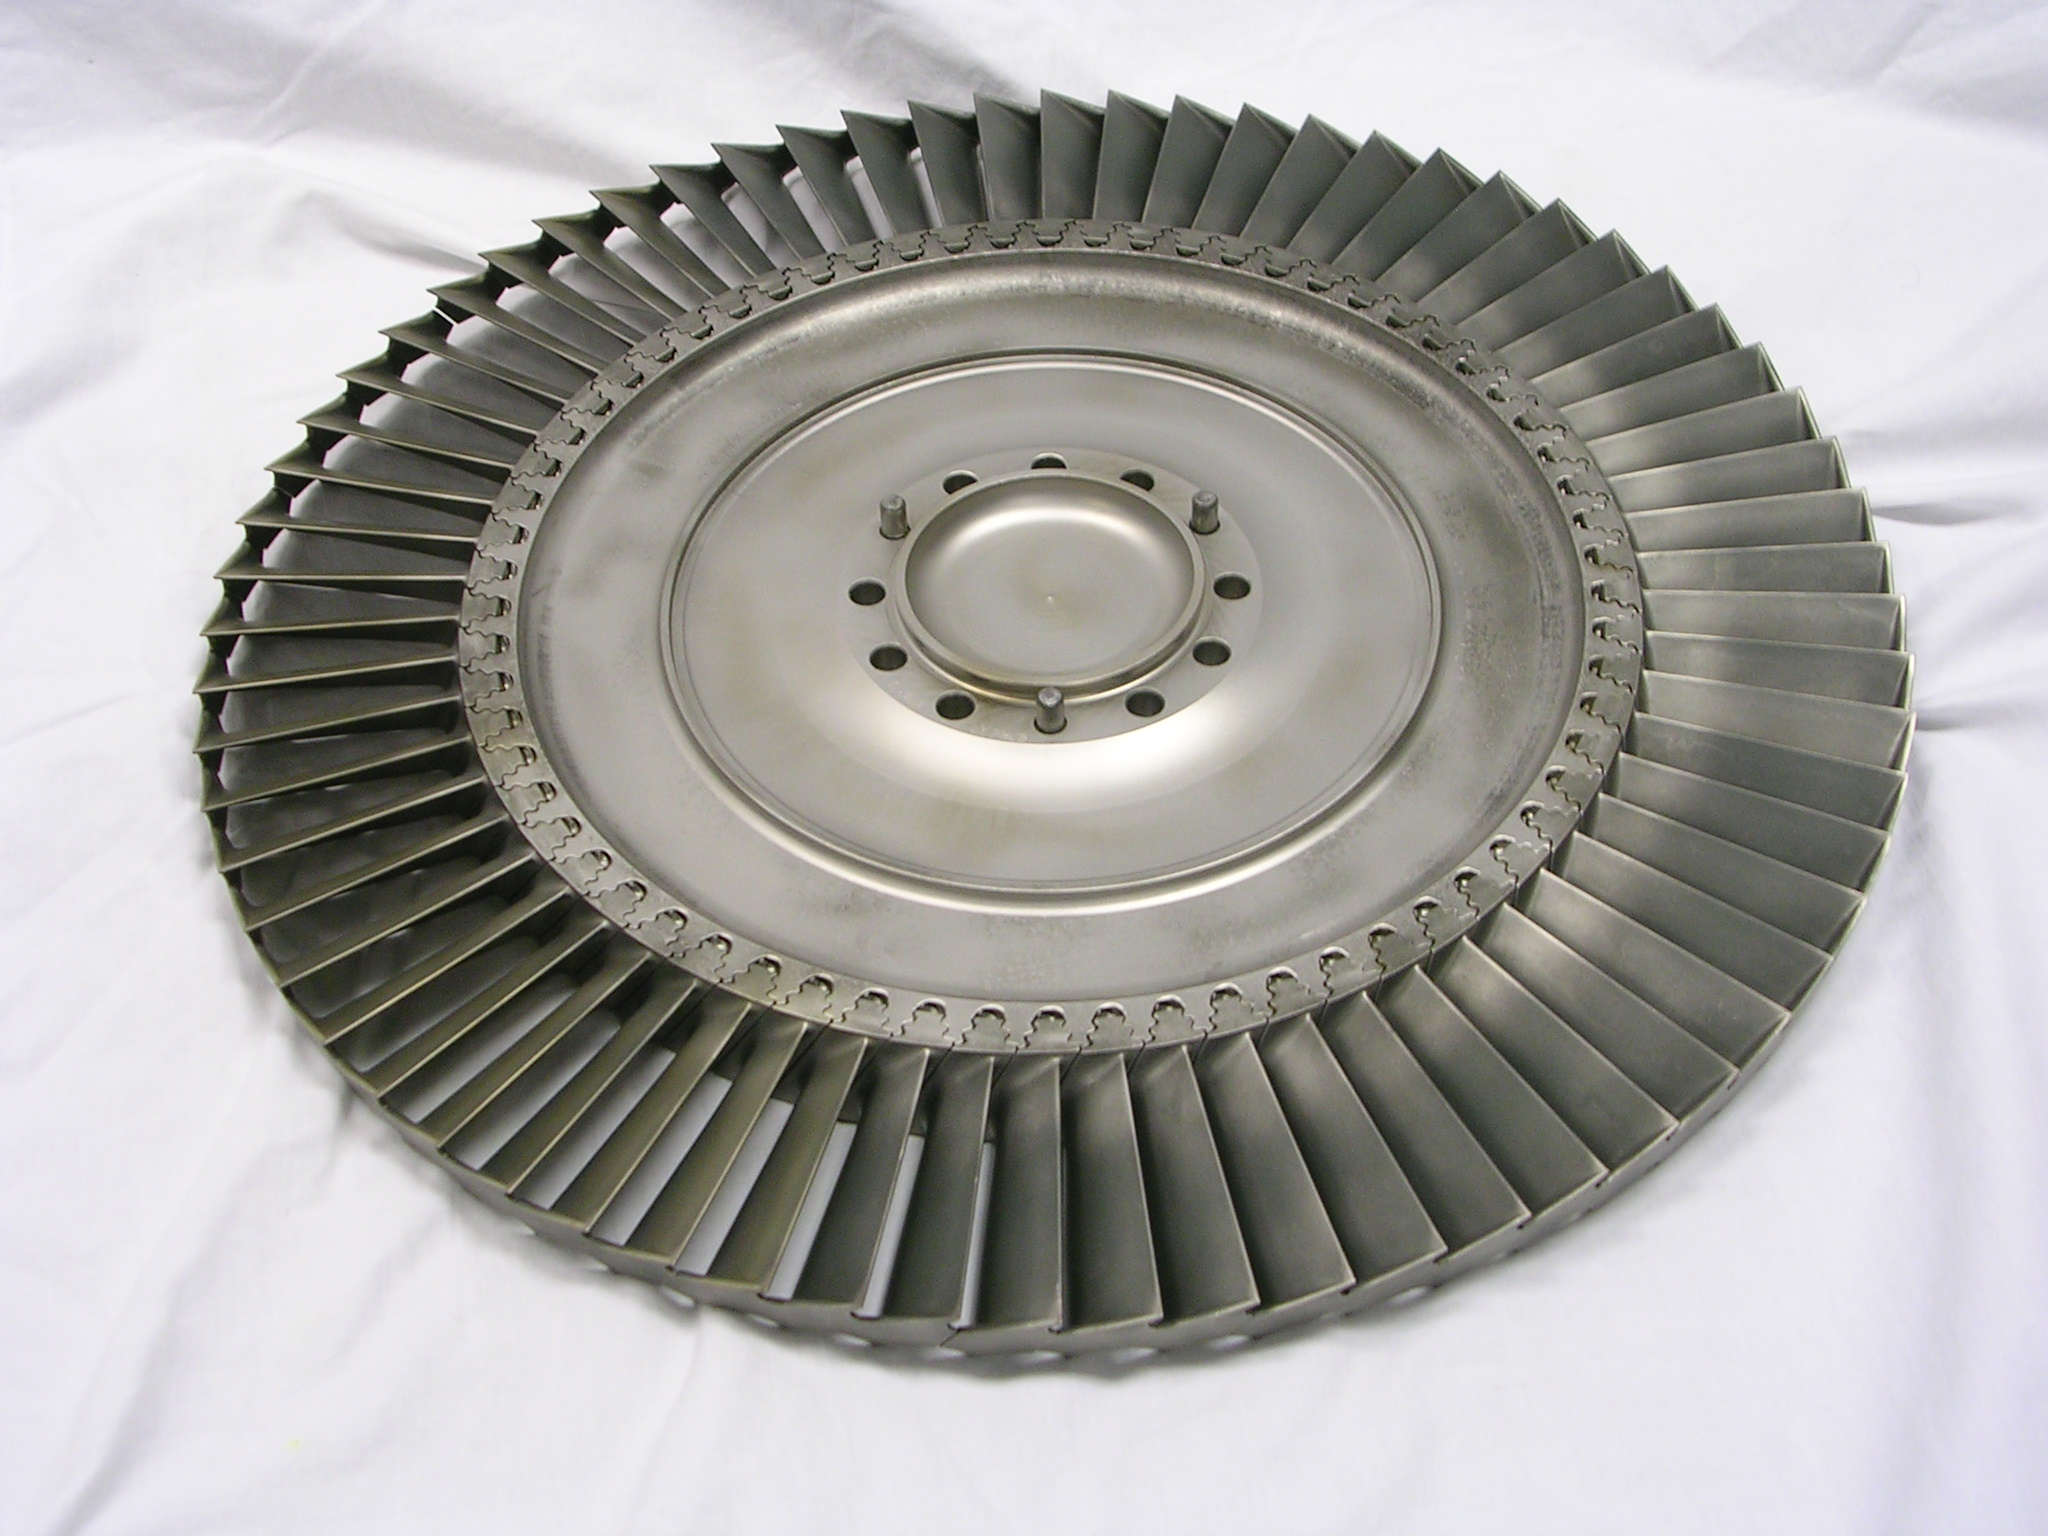 Second Stage Power Turbine Rotor Assembly